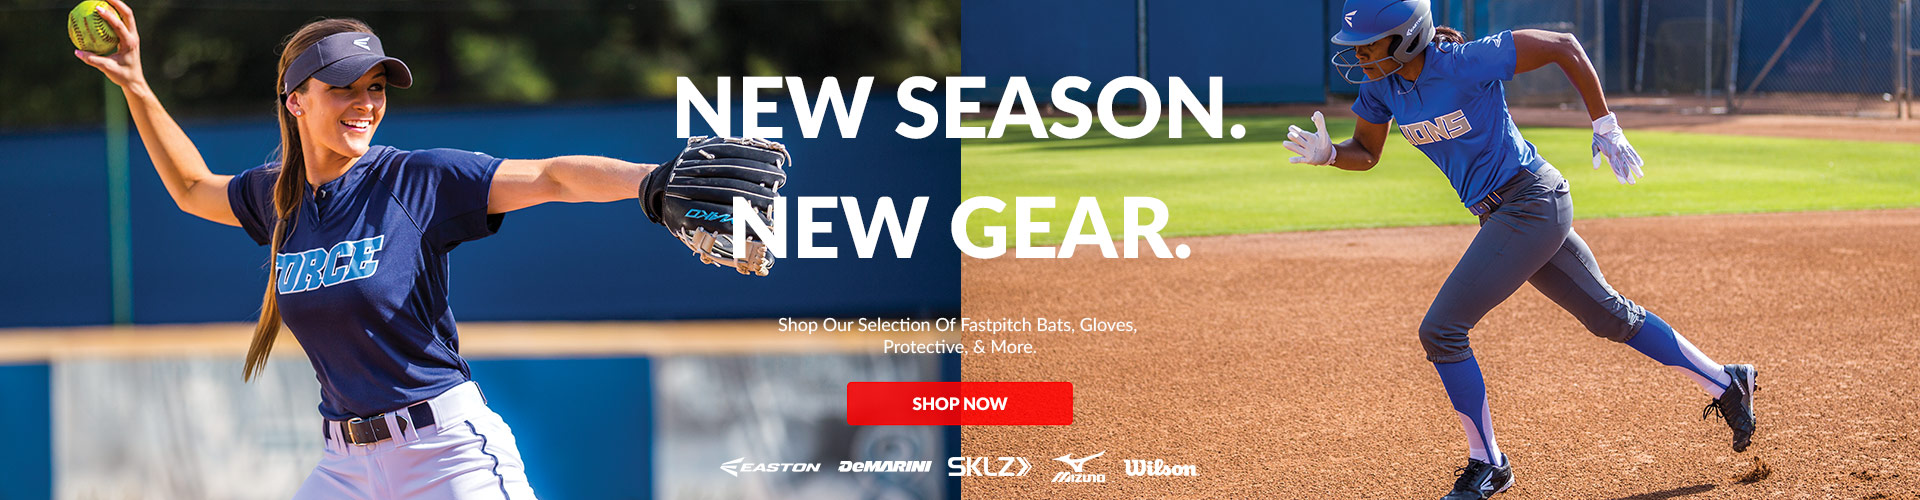 Shop our selection of Fastpitch Bats, Gloves, Protective, & More available for sale at your local Source For Sports baseball & softball stores today near you.